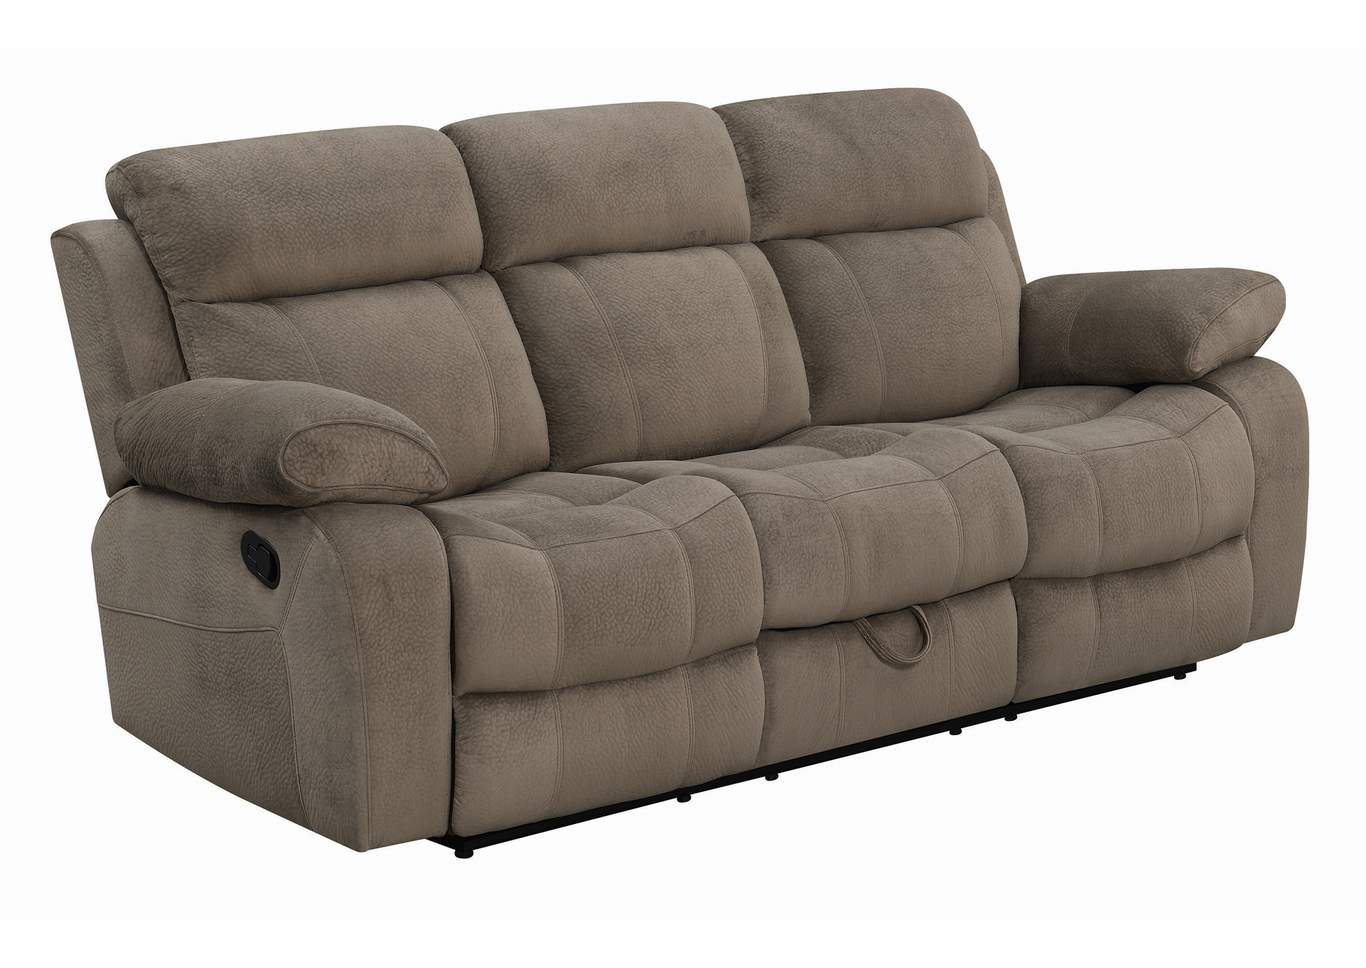 Coffee Myleene Brown Reclining Sofa,Coaster Furniture